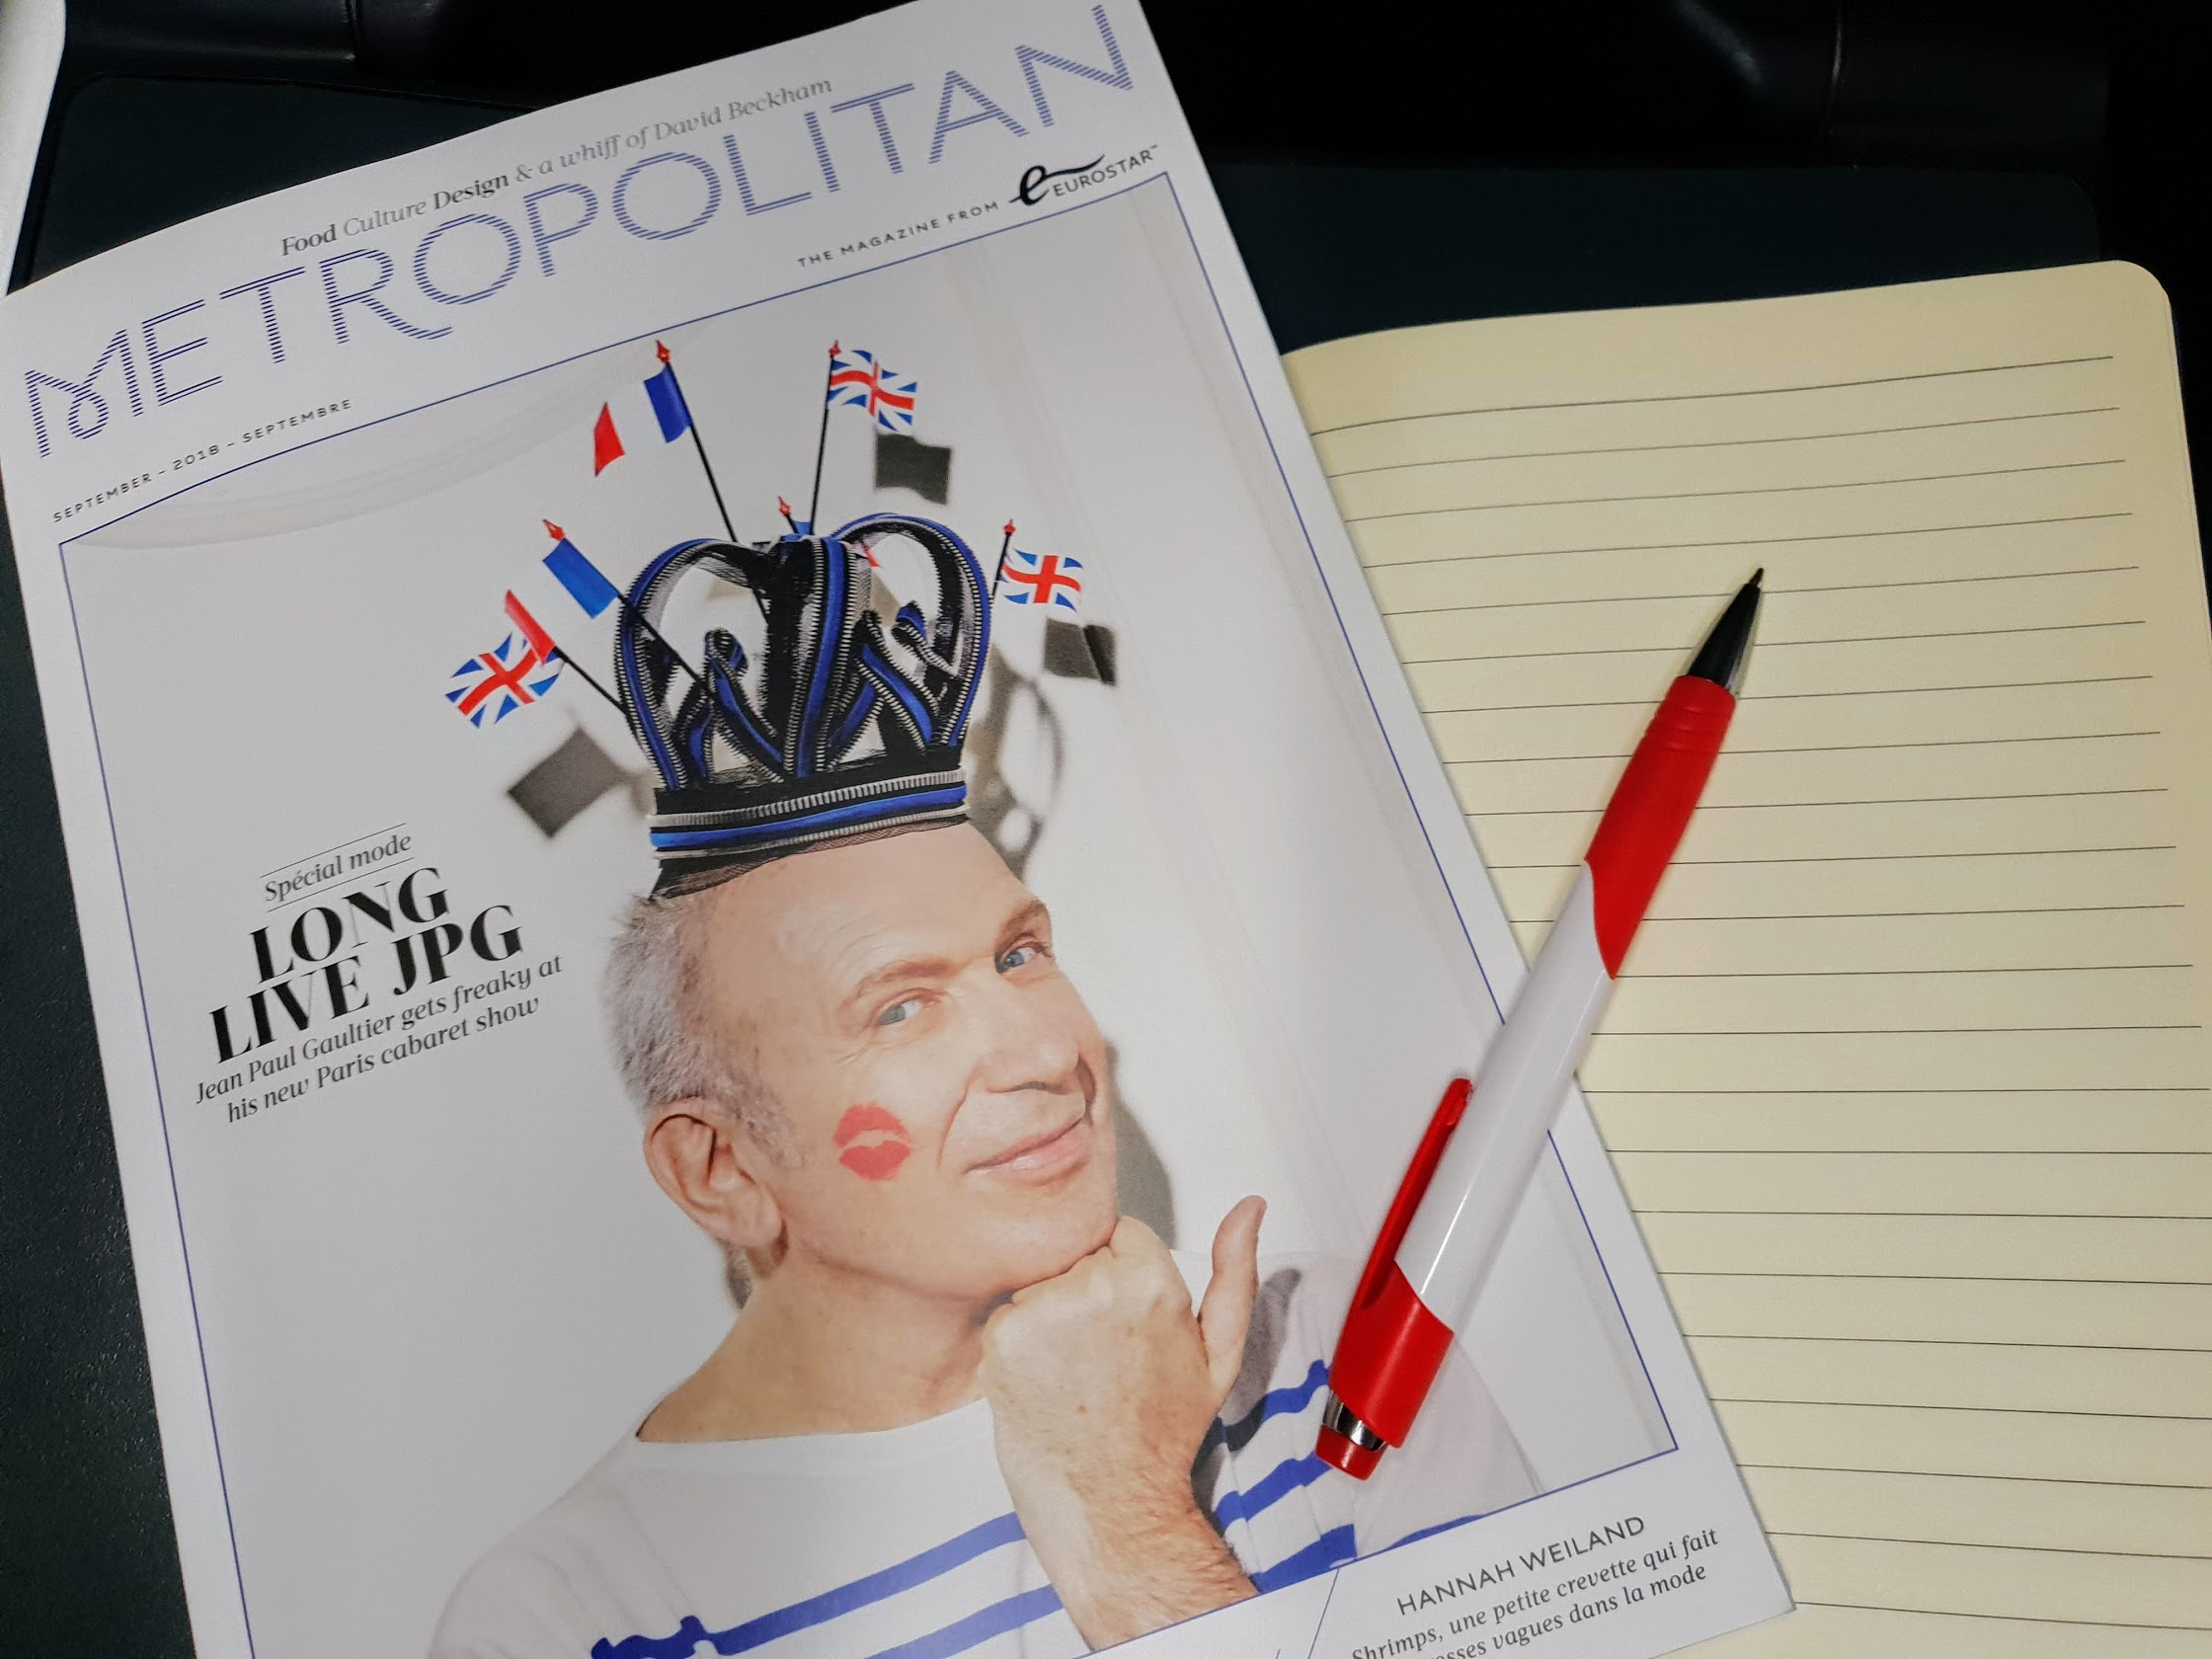 Eurostar magazine - travelling from London to Rotterdam by Eurostar